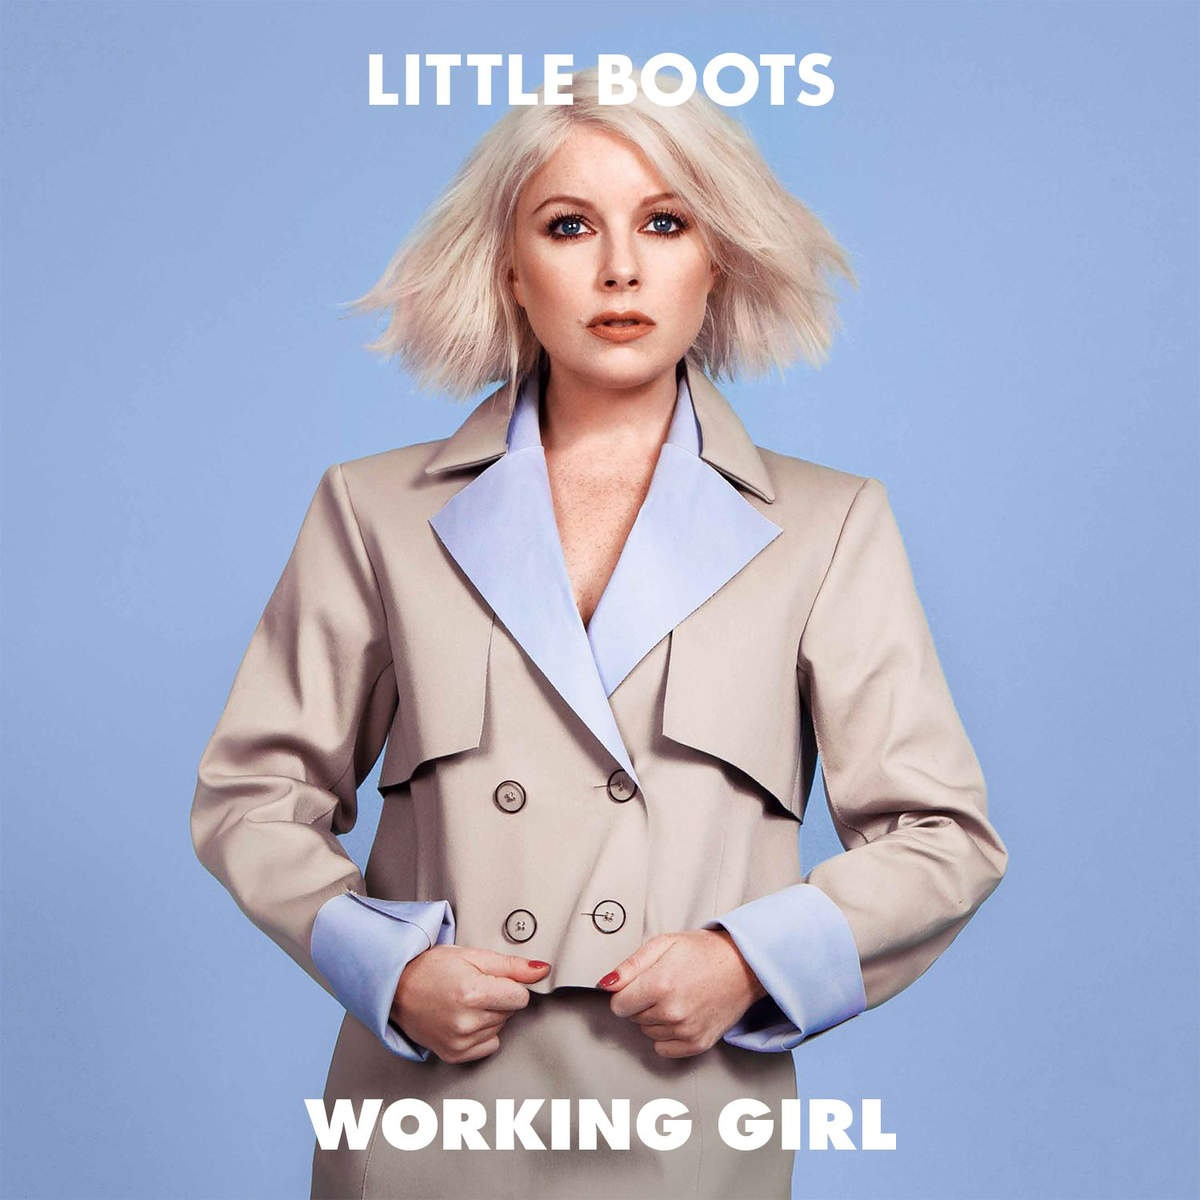 LITTLE BOOTS - Working girl - the album, out now.